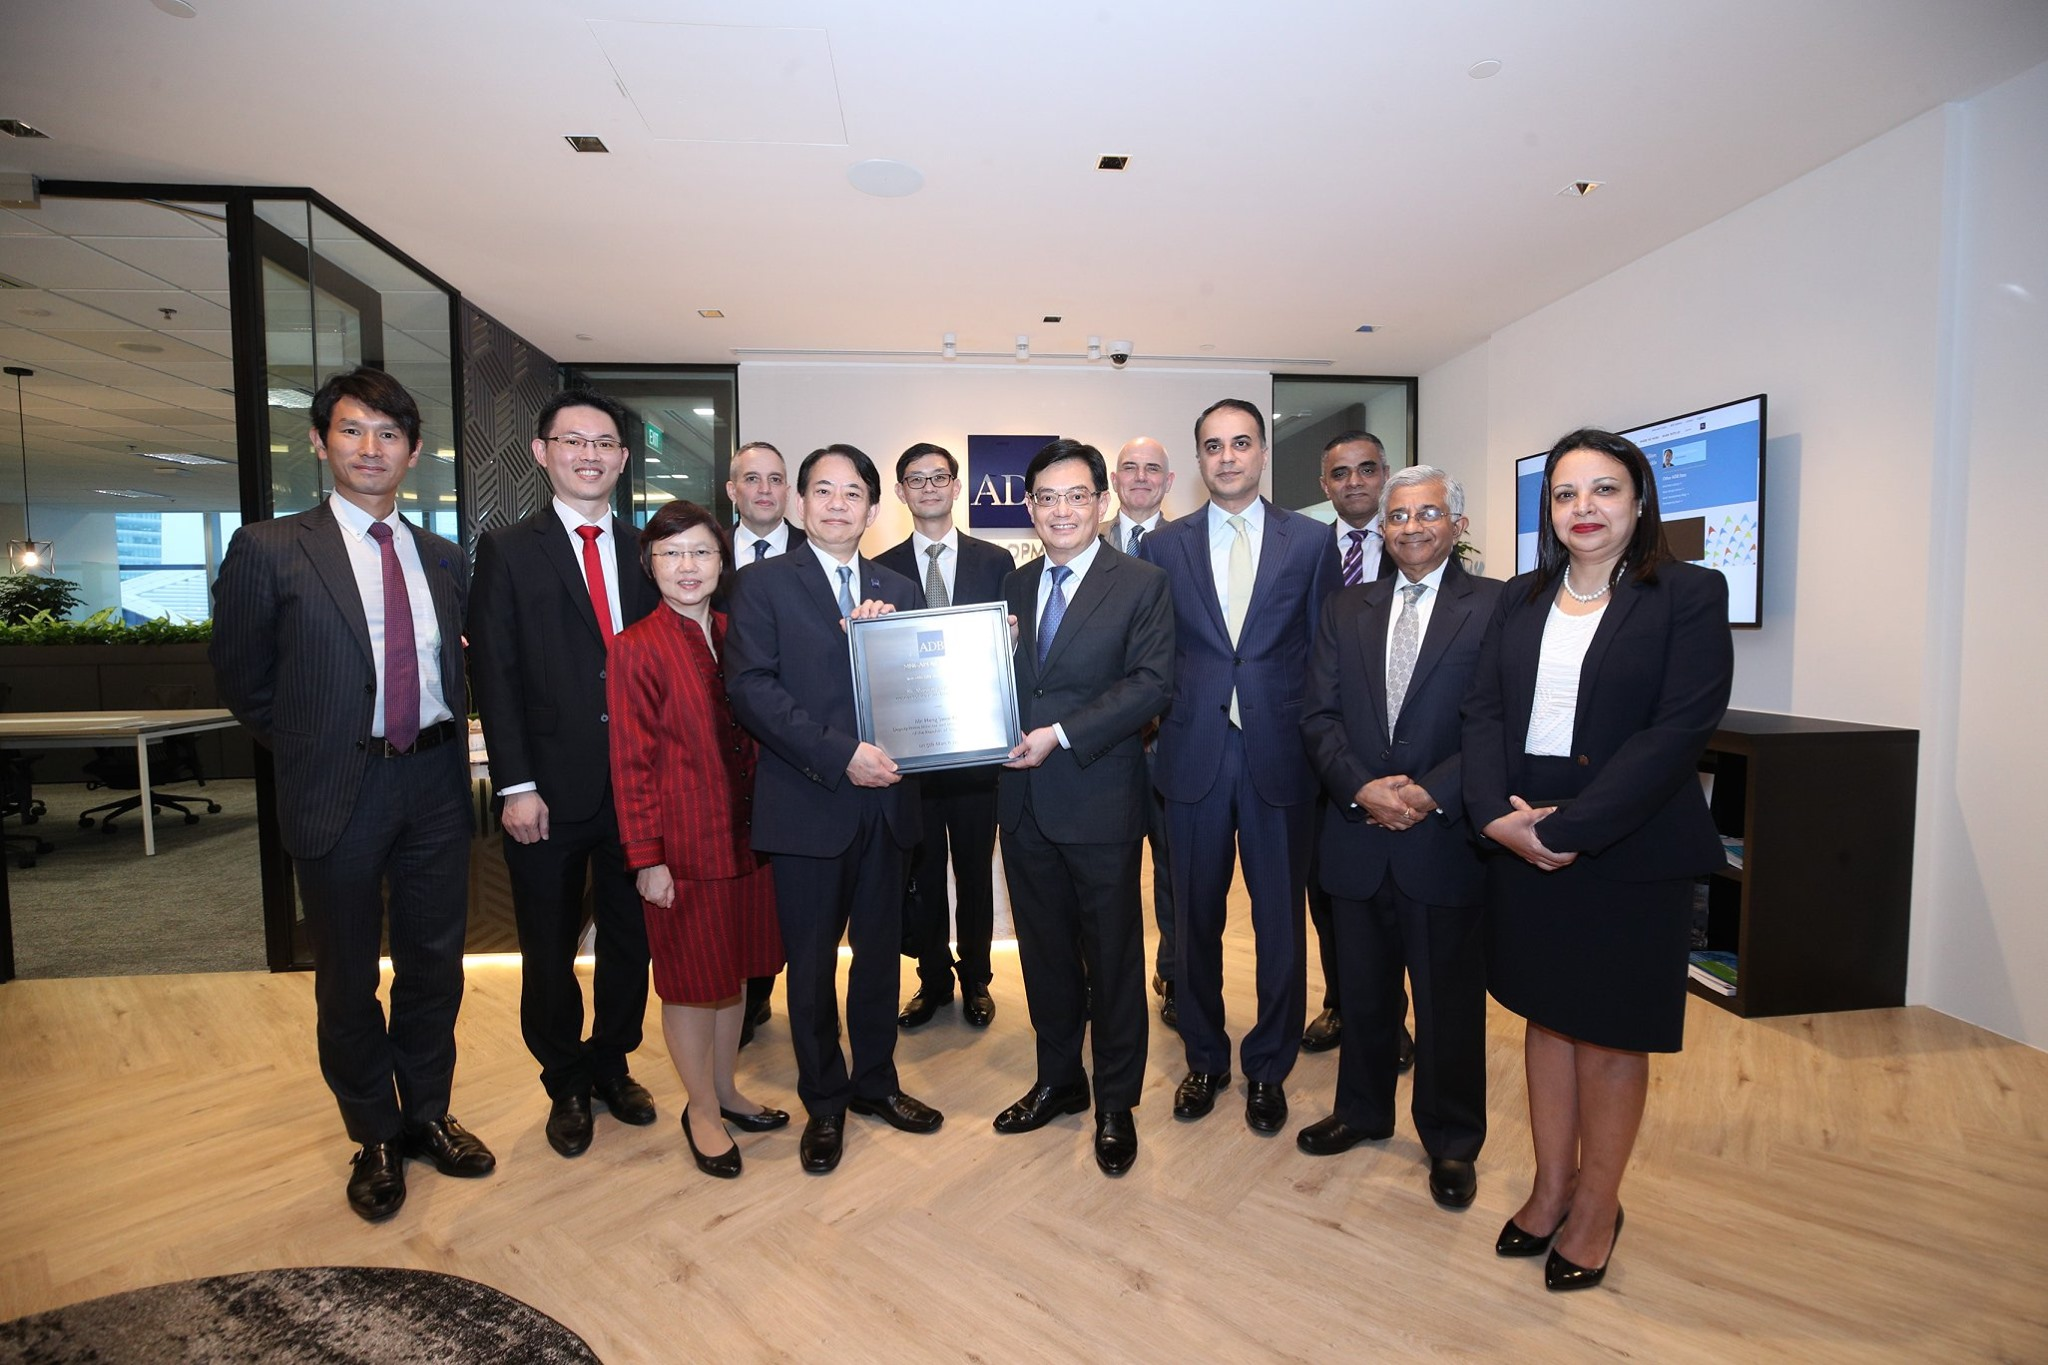 President of the Asian Development Bank Masatugu Asakawa and Singapore Deputy Prime Minister and Minister for Finance Heng Swee Keat with ADB's senior management team and officials from Ministry of Finance. Photo courtesy: MCI, Chwee